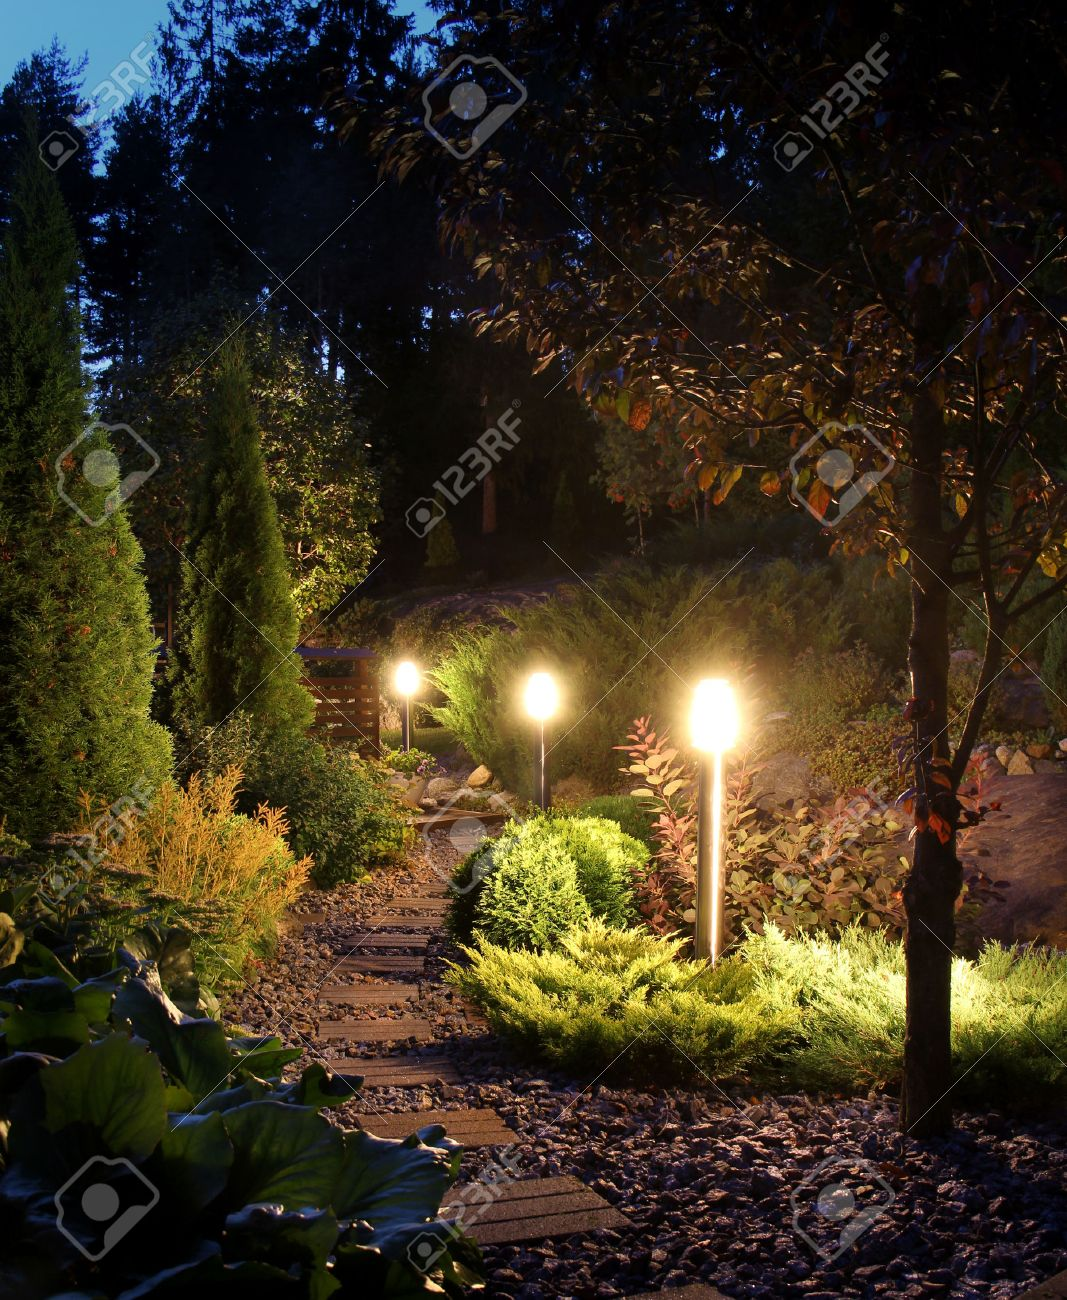 Illuminated Home Garden Path Patio Lights In Evening Dusk Stock